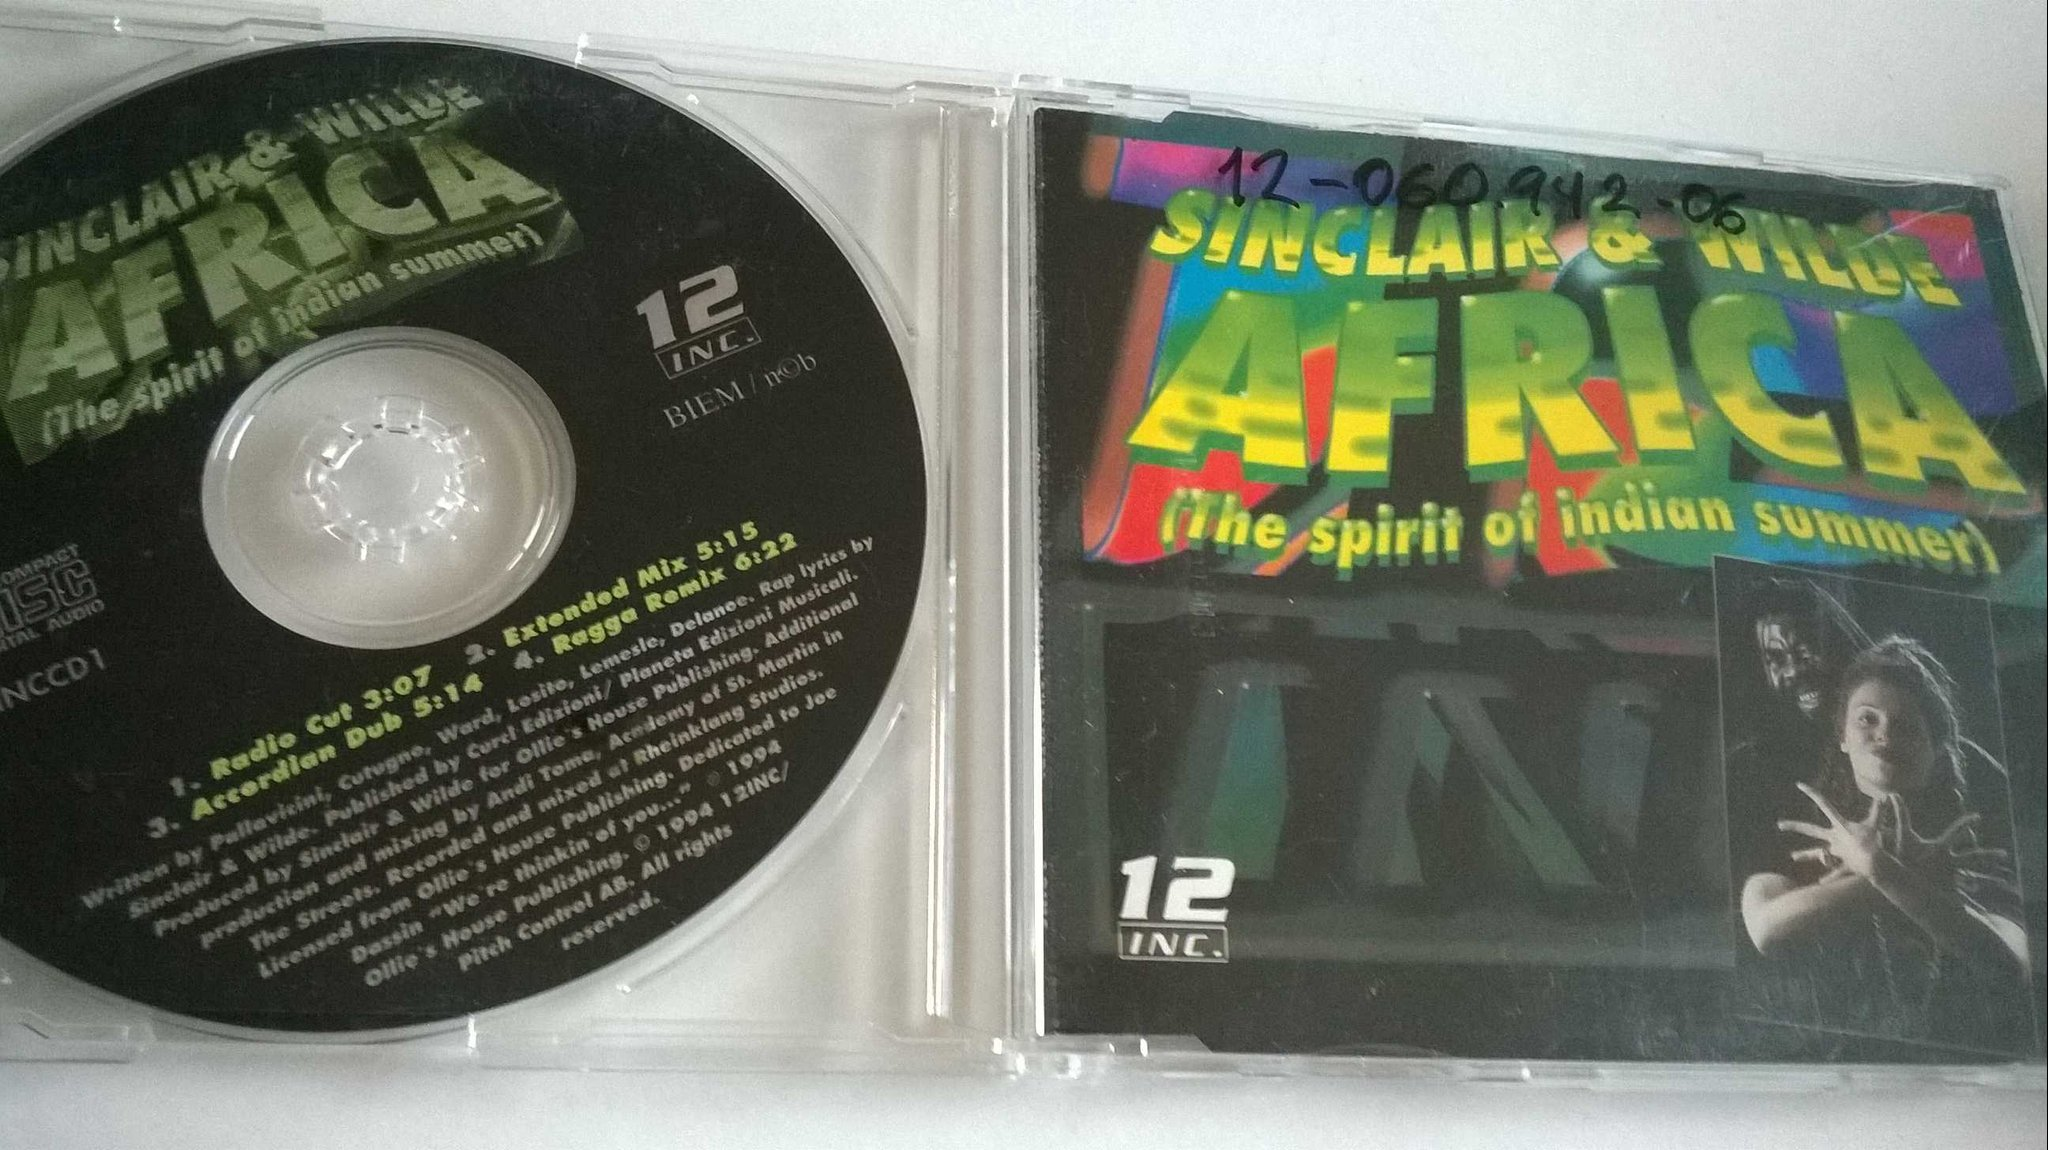 Sinclair & Wilde - Africa (The Spirit Of Indian Summer), CD